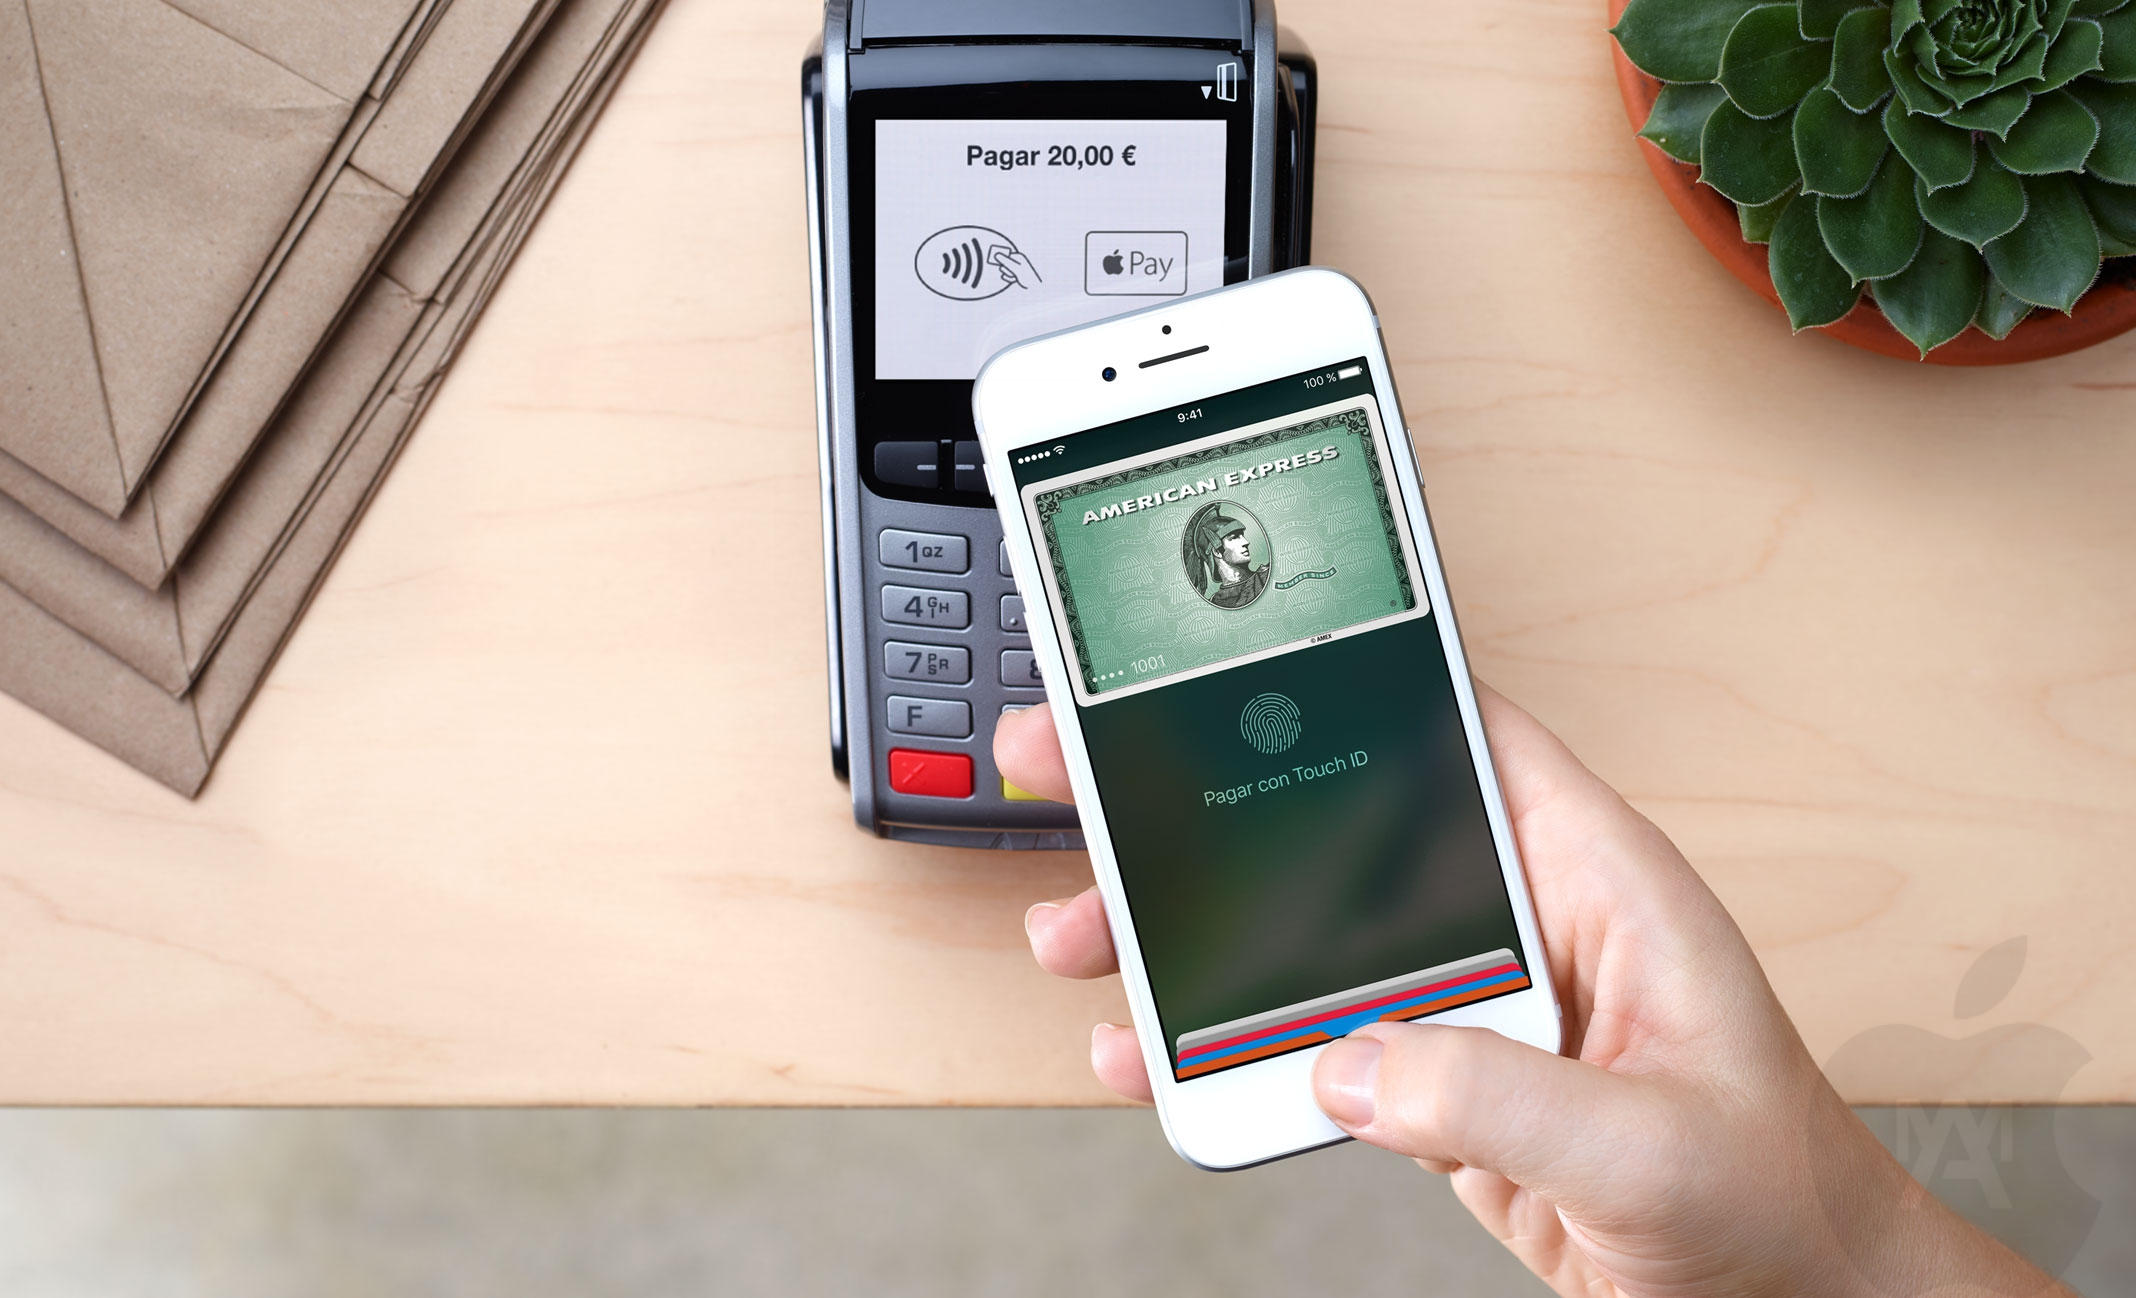 Apple Pay en el banco de pruebas de Applemaníacos